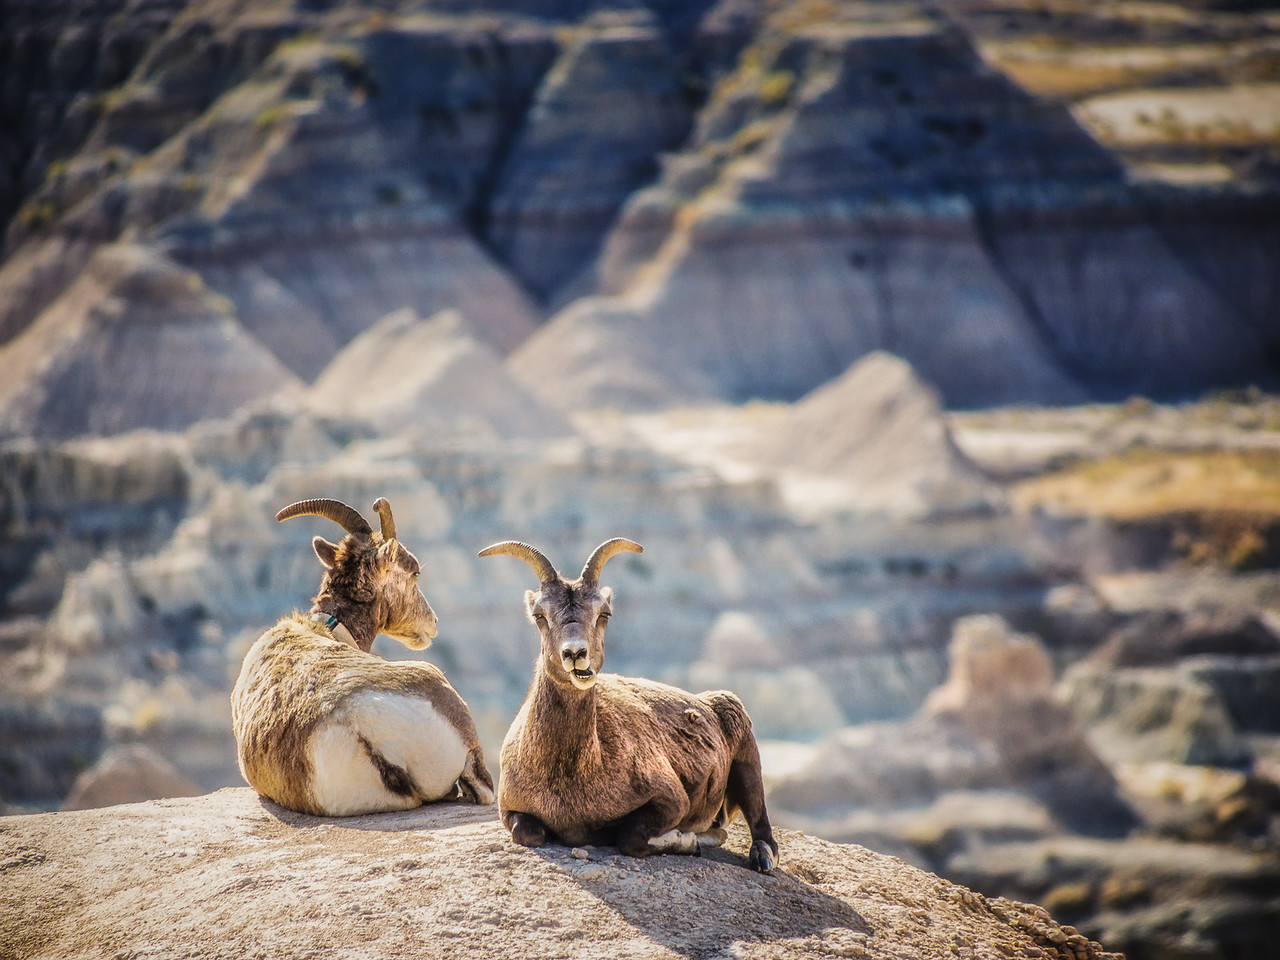 Two Bighorn Sheep Rams at Rest in the Badlands National Park in South Dakota